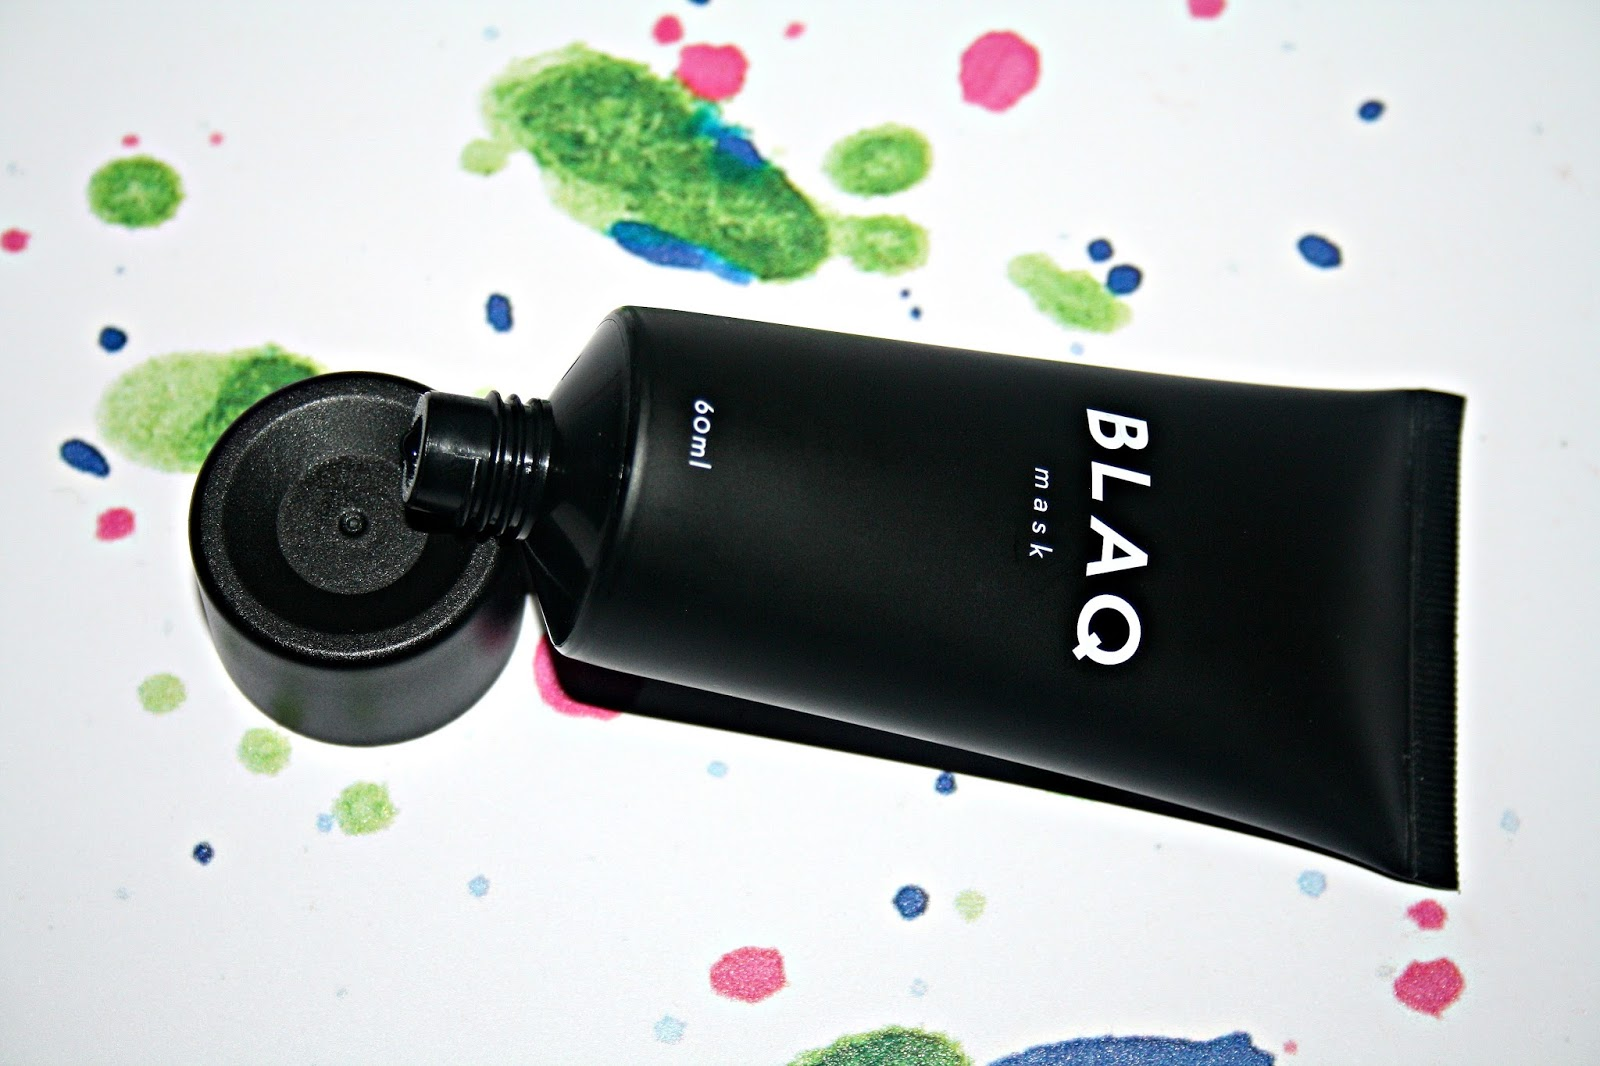 blaq mask how to use